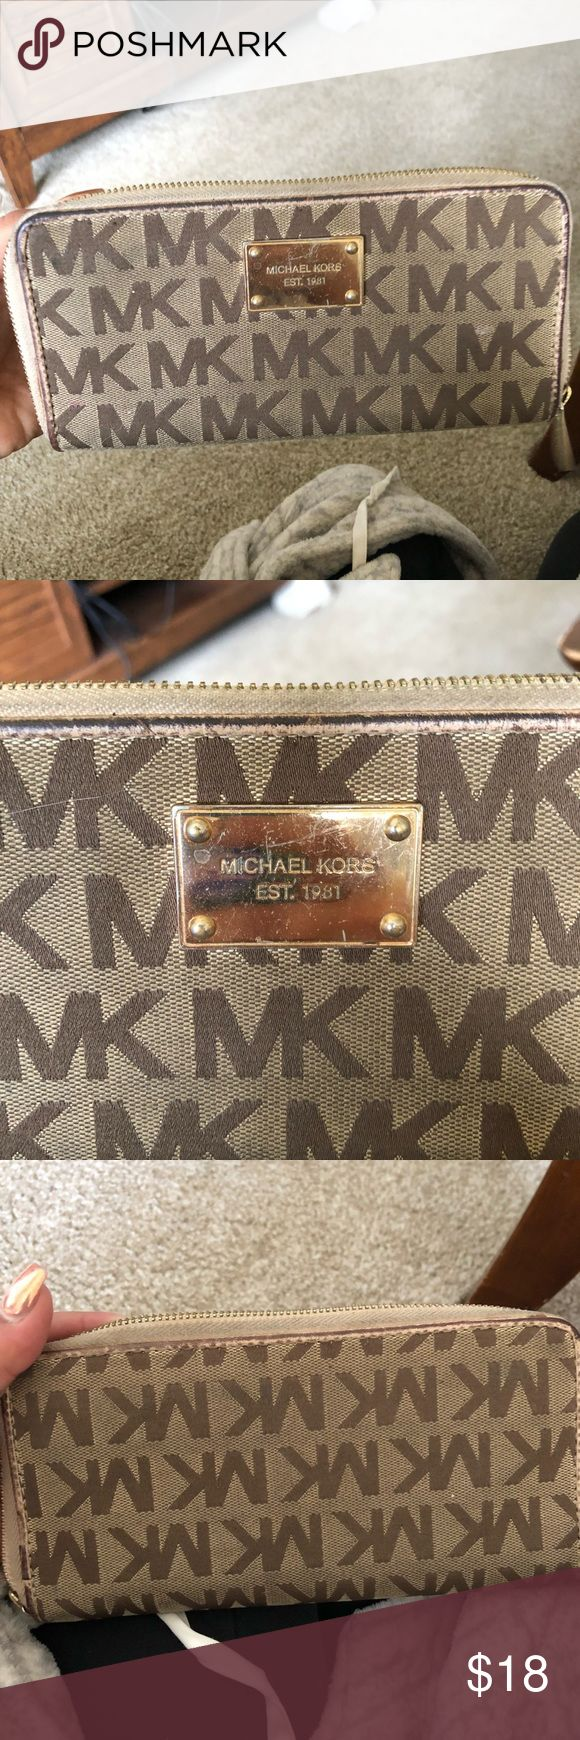 Michael Kors wallet! Golden brown Michael Kors wallet! Slight ware but not bad at all still a great wallet! Bought from Macy's, also have a matching purse I'm selling, will take best offer Michael Kors Bags Wallets